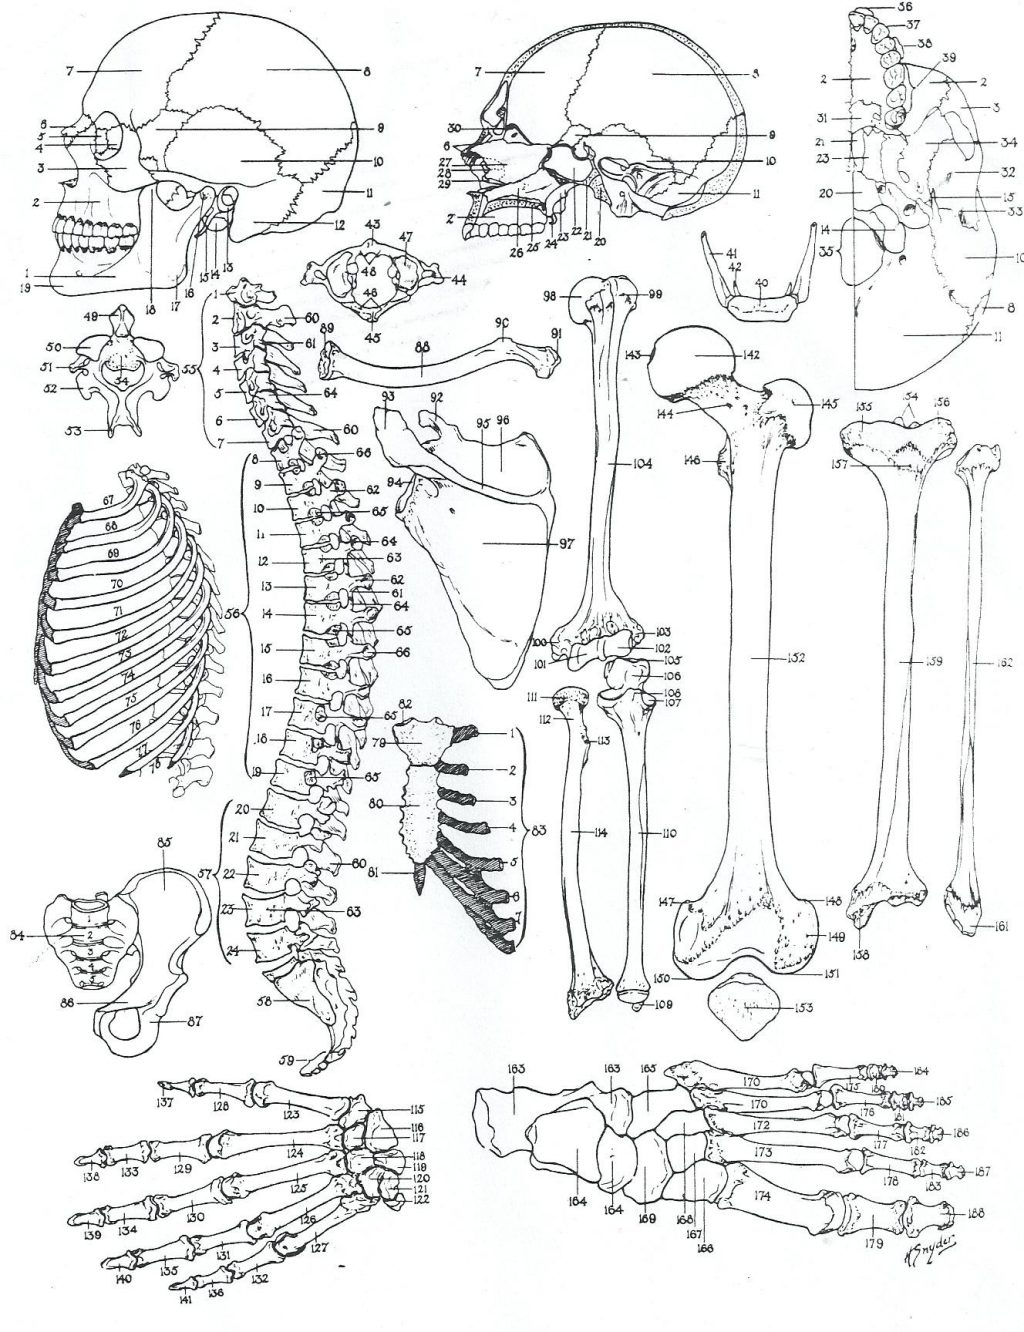 Coloring Page ~ Anatomy Coloring Pages Dechome Me And Book For Kids - Free Anatomy Coloring Pages Printable